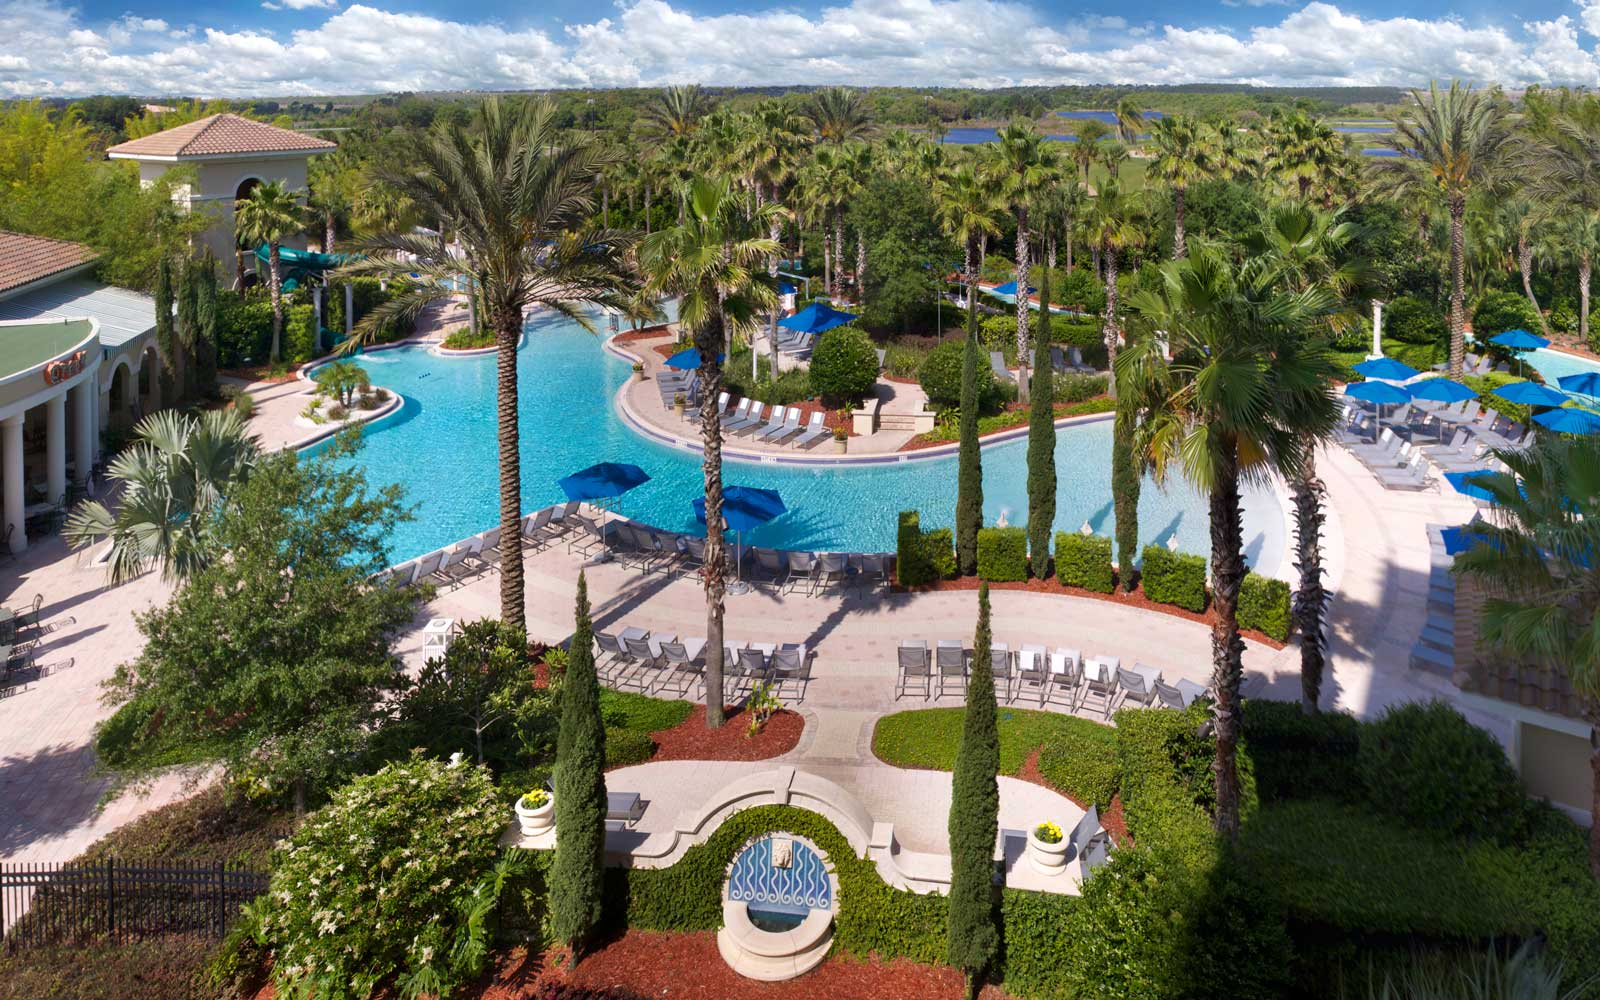 Get a Two-night Stay at Omni Orlando Resort at Championsgate for Only $139 Per Night